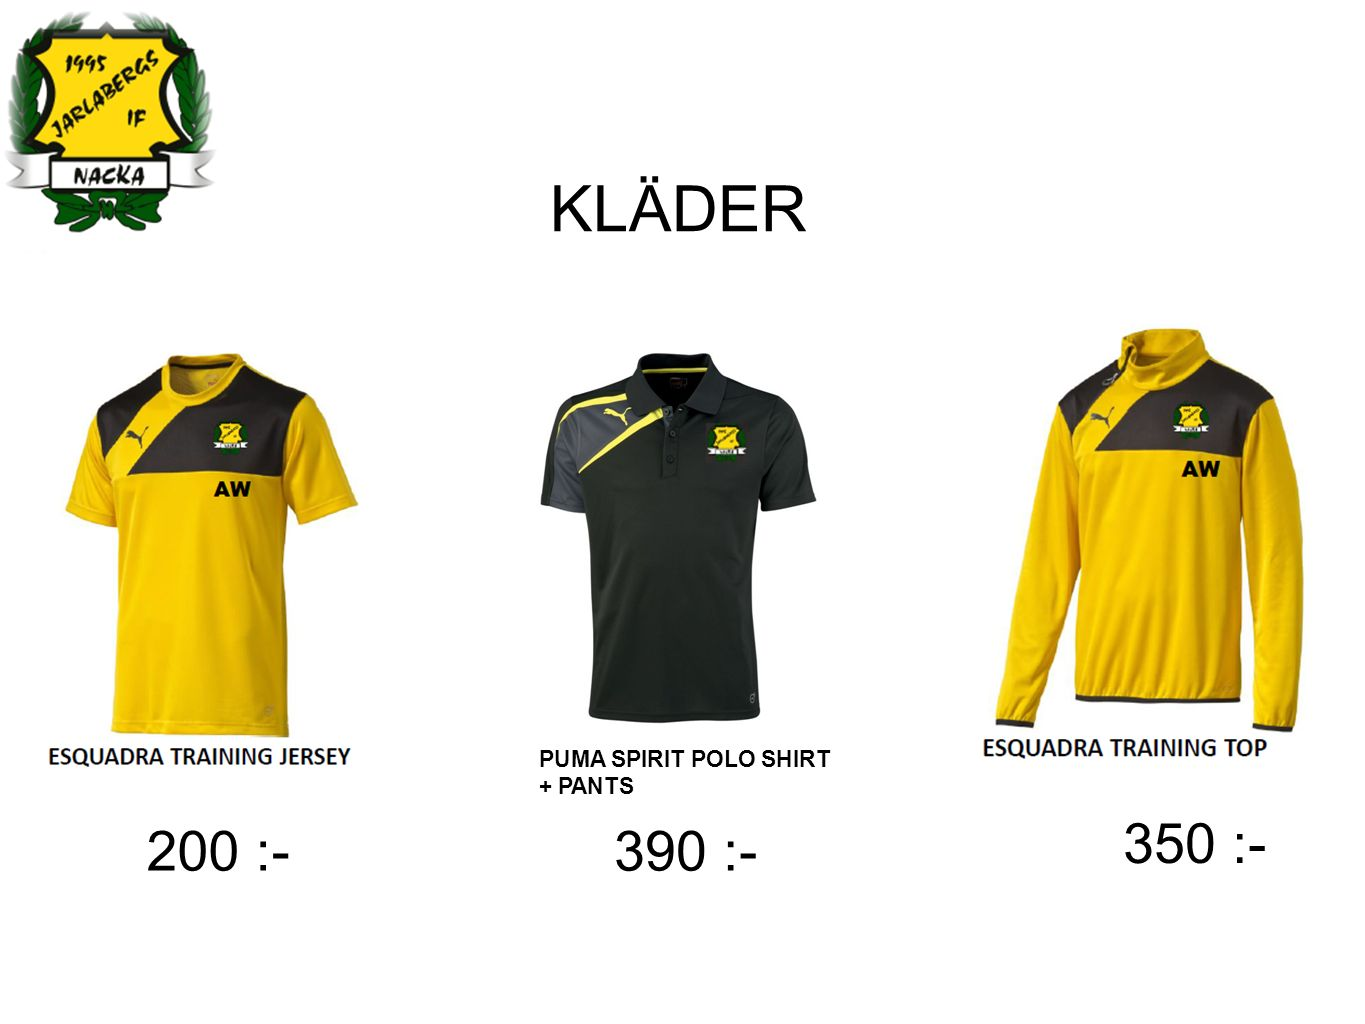 KLÄDER 200 :- 350 :- PUMA SPIRIT POLO SHIRT + PANTS 390 :-